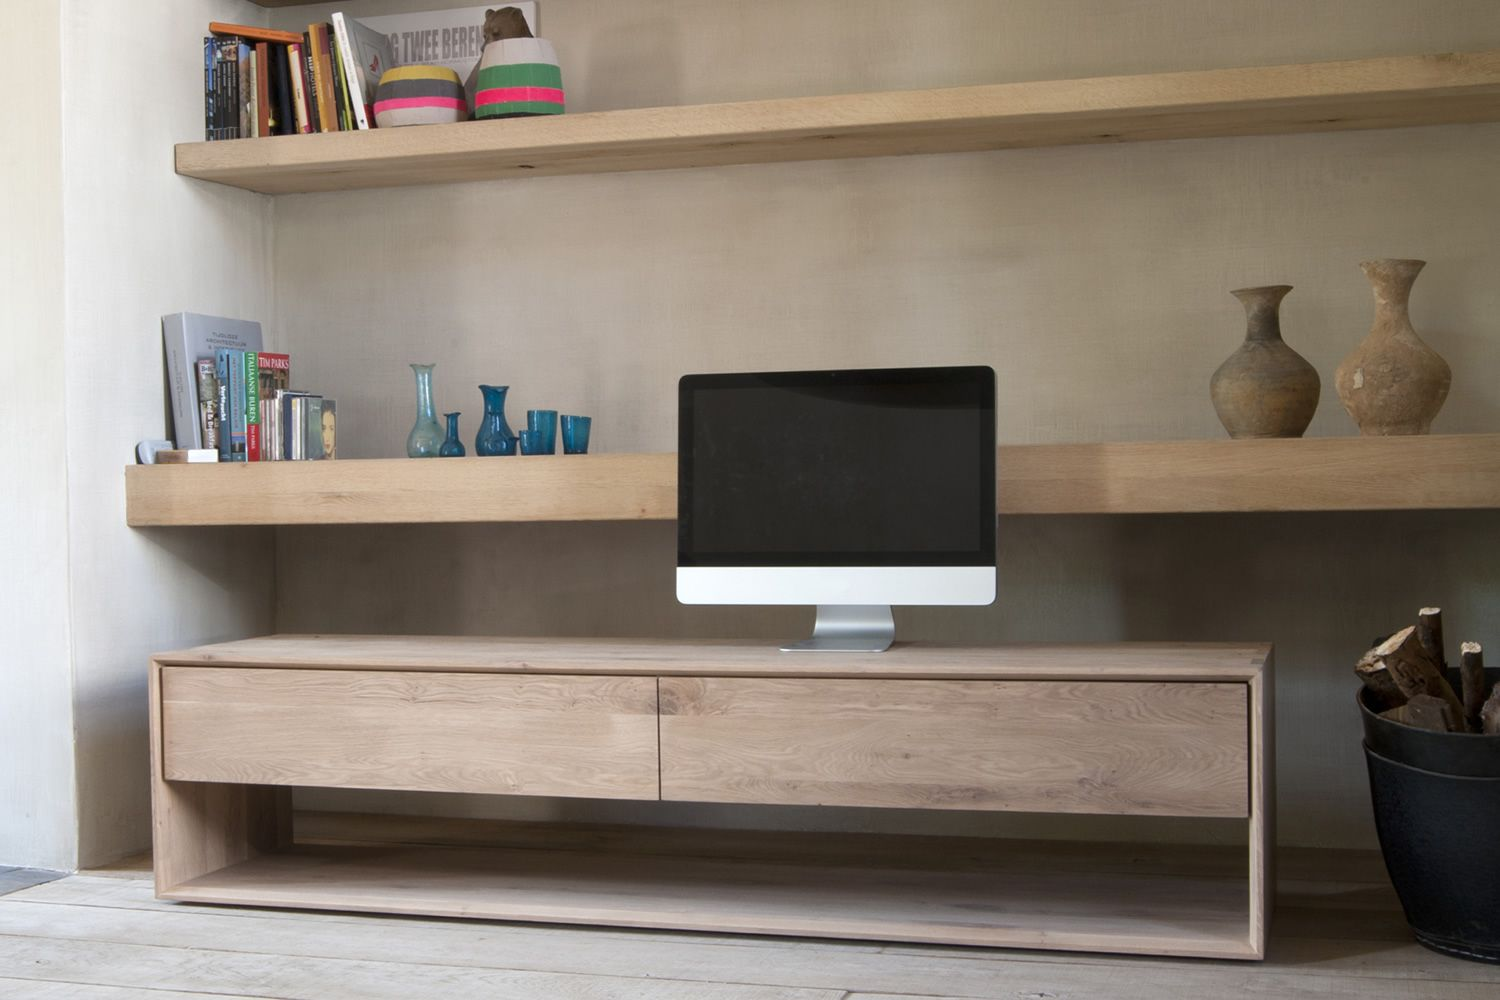 NordicTV  Ethnicraft TV stand made of wood different